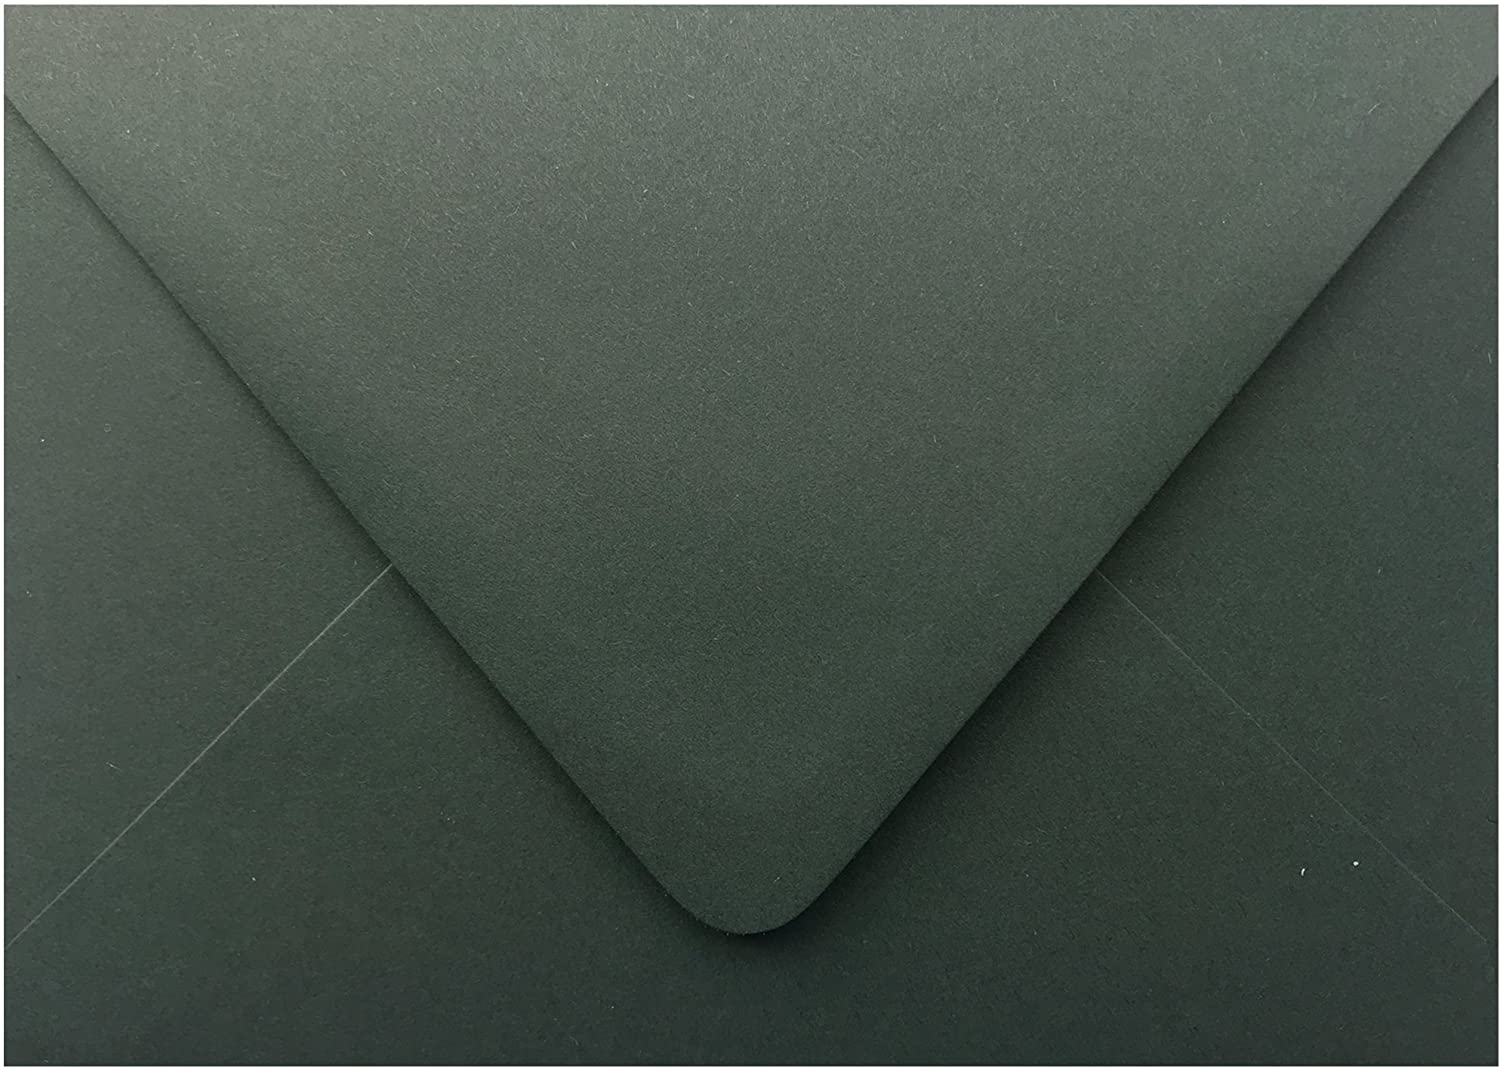 Dark Forest Green Contour Euro Flap 25 Pack A7-70lb Envelopes (5-1/4 x 7-1/4) for 5 x 7 Invitations Announcements Weddings Showers Communion Confirmation Cards by The Envelope Gallery